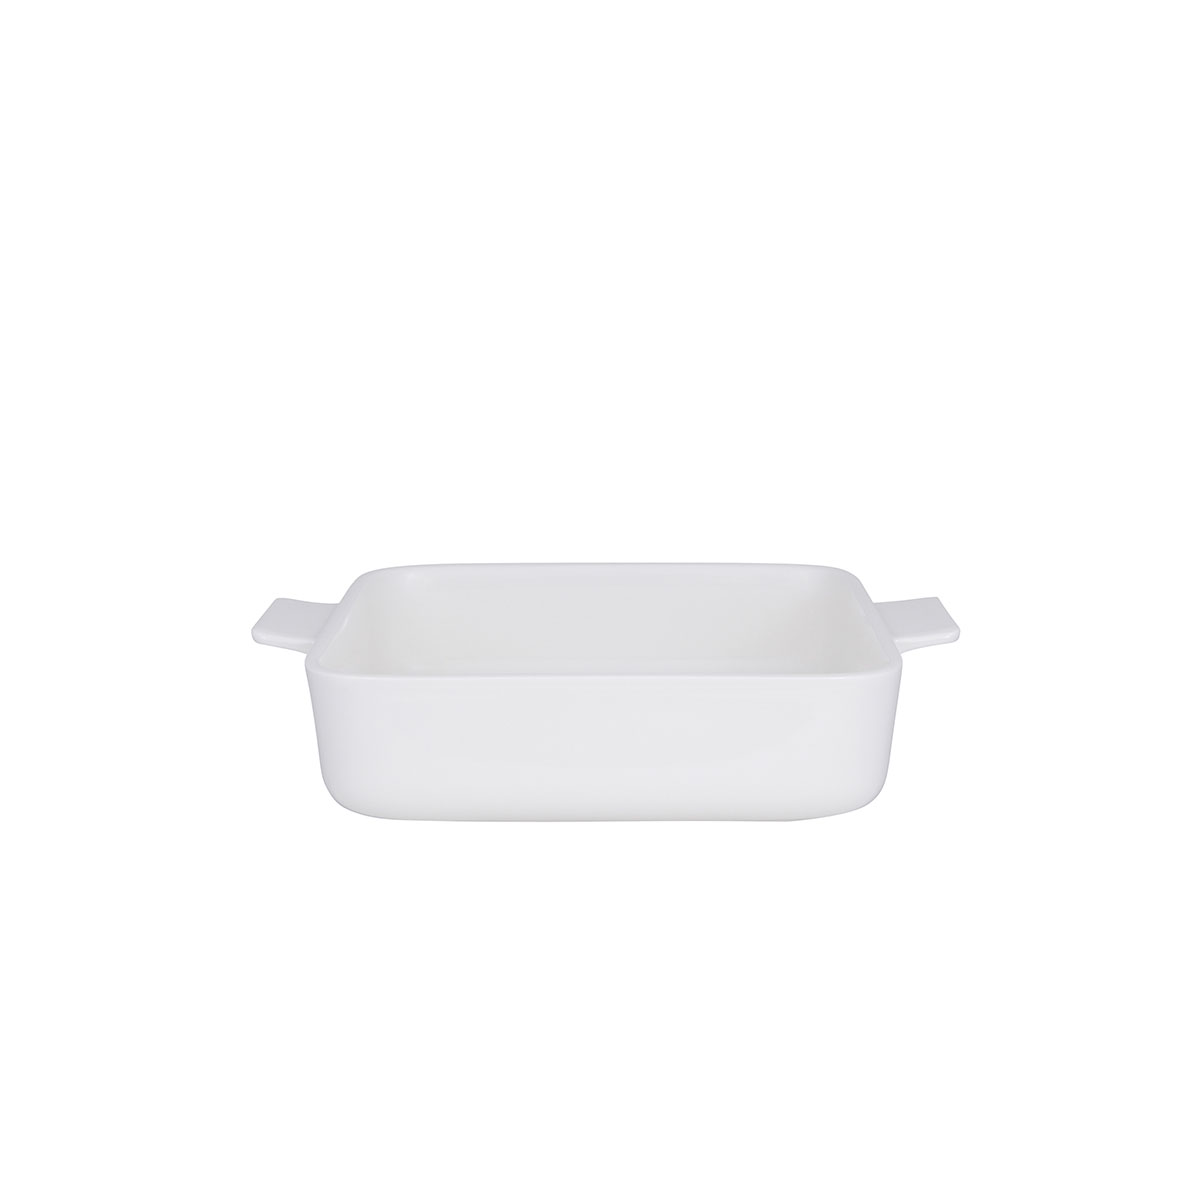 Clever Cooking Squ. baking dish 21x21cm